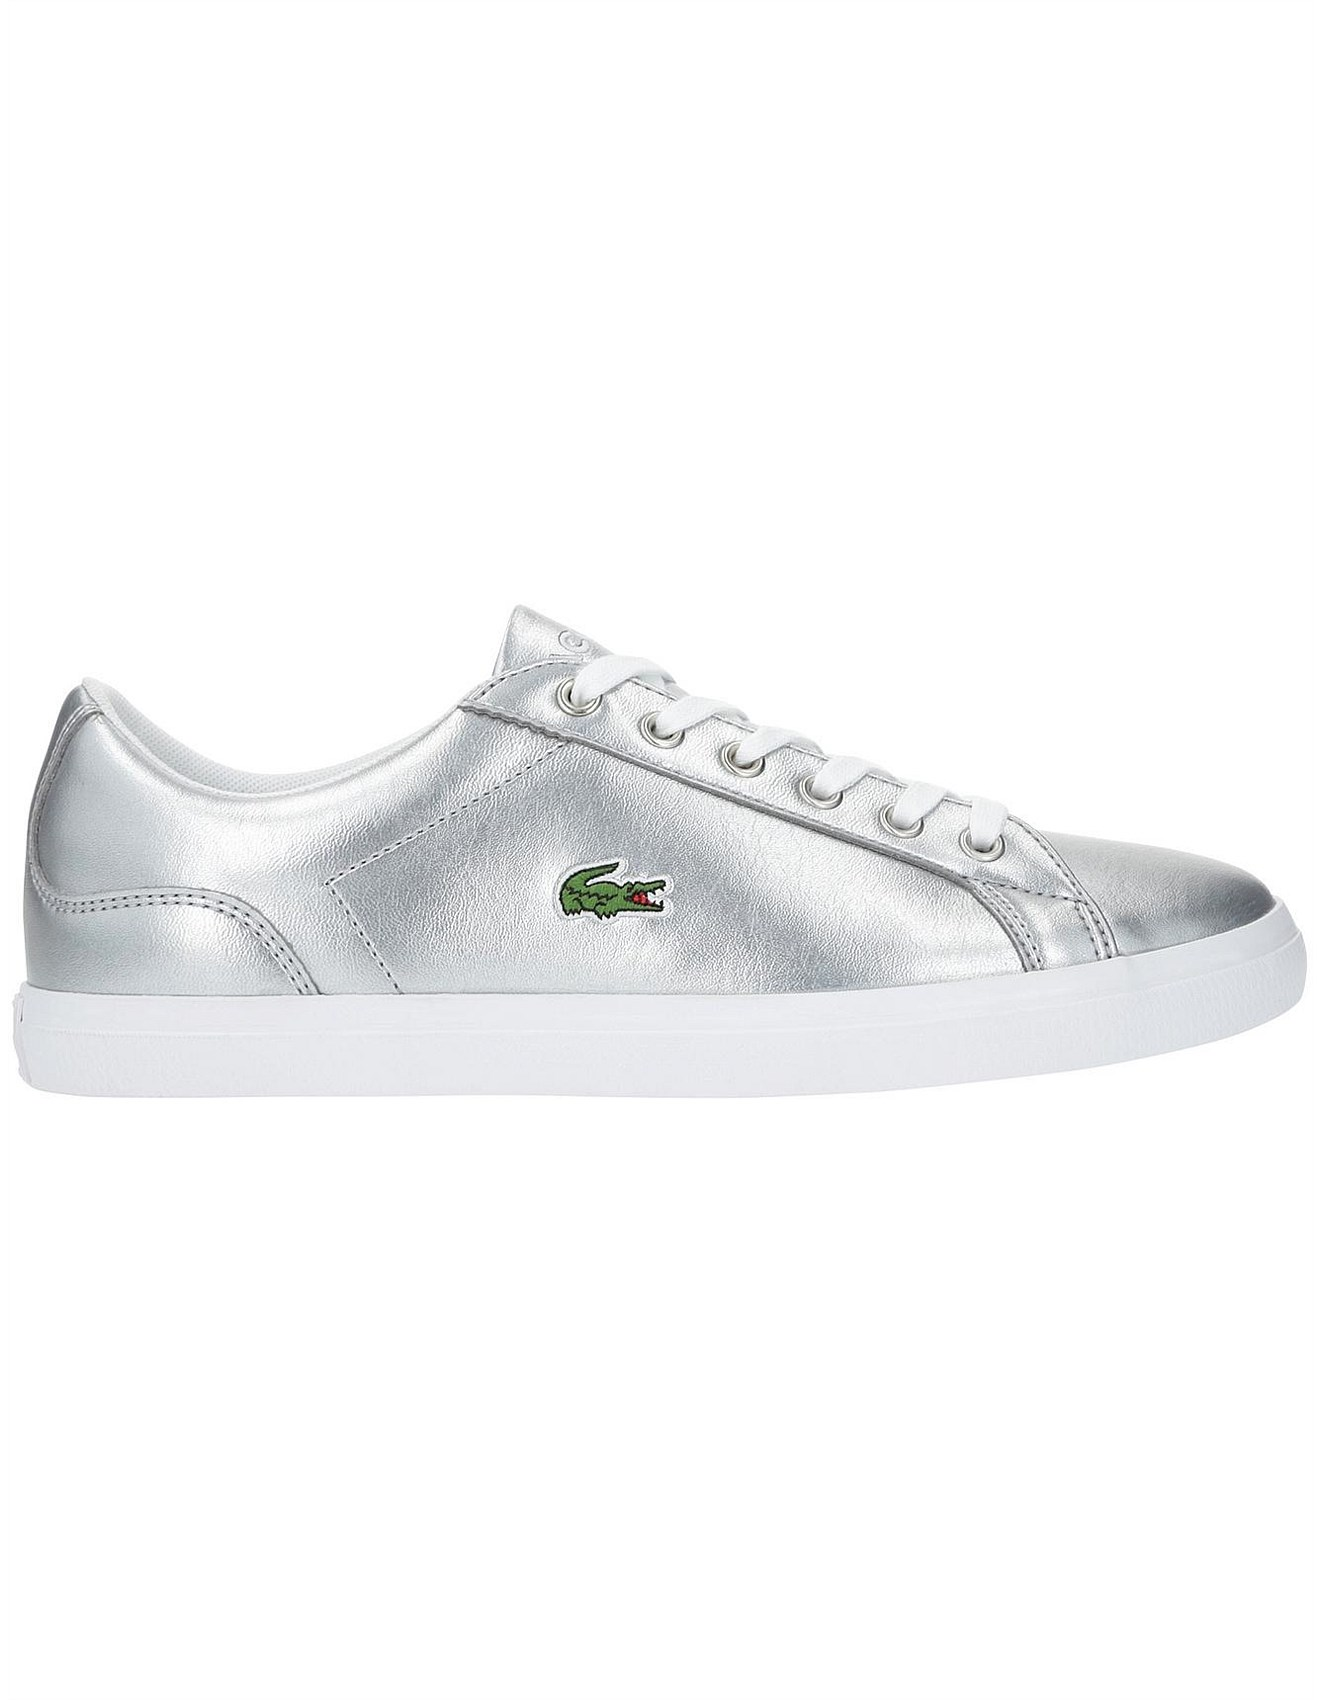 9ea585f48a0ddc Lerond Junior Girls Metallic Sneaker